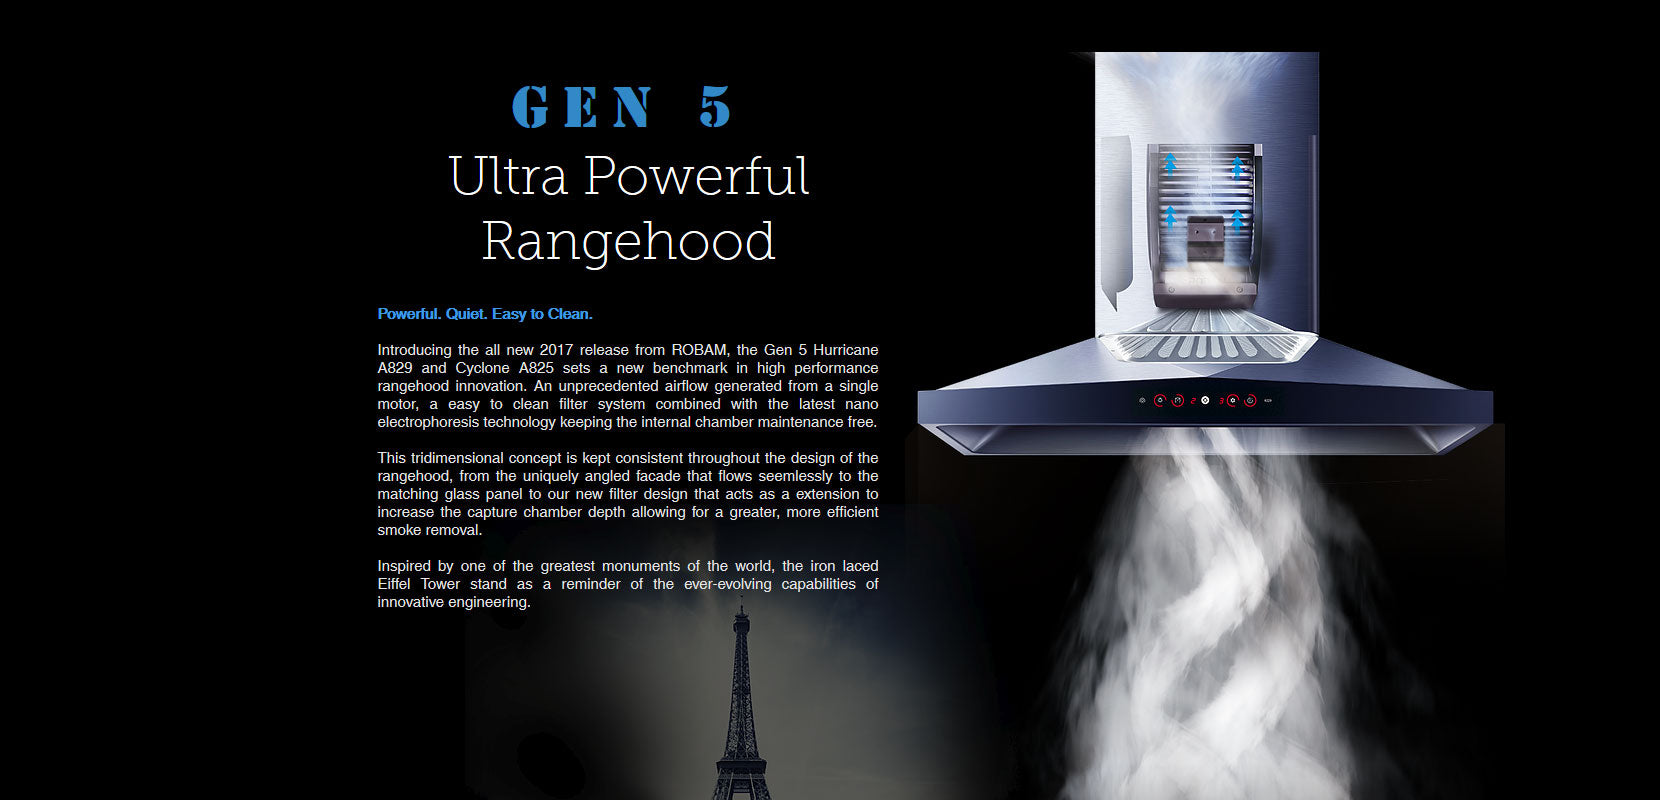 Gen 5 Ultra Powerful Rangehood